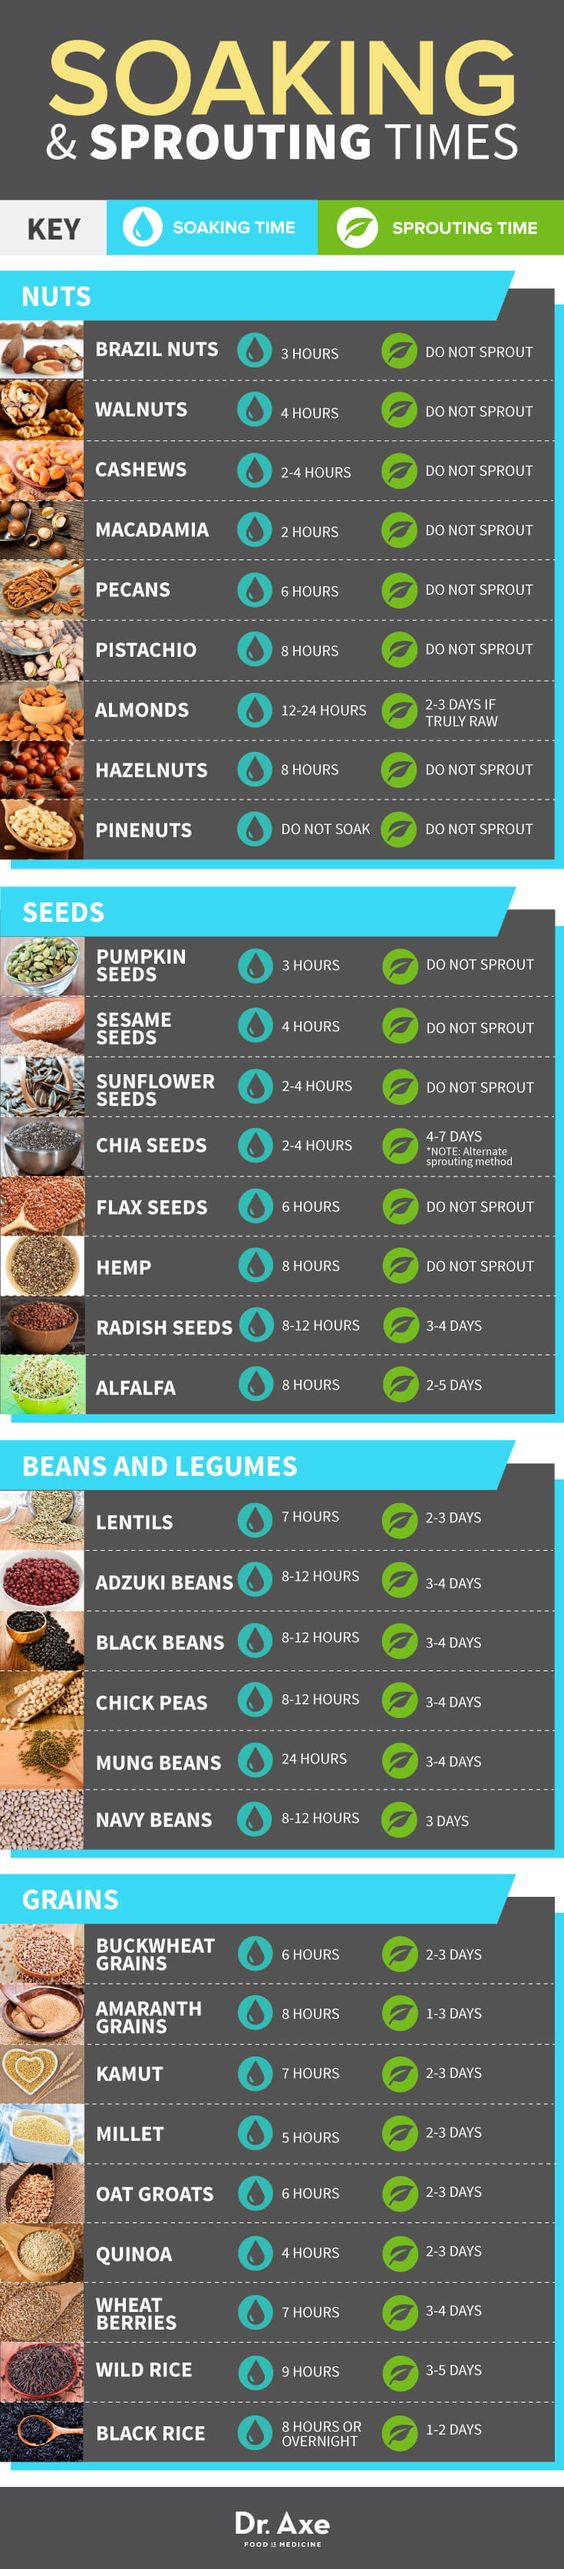 Sesame seeds | Why sprout? Soaking and sprouting guide | Information | Dr Axe